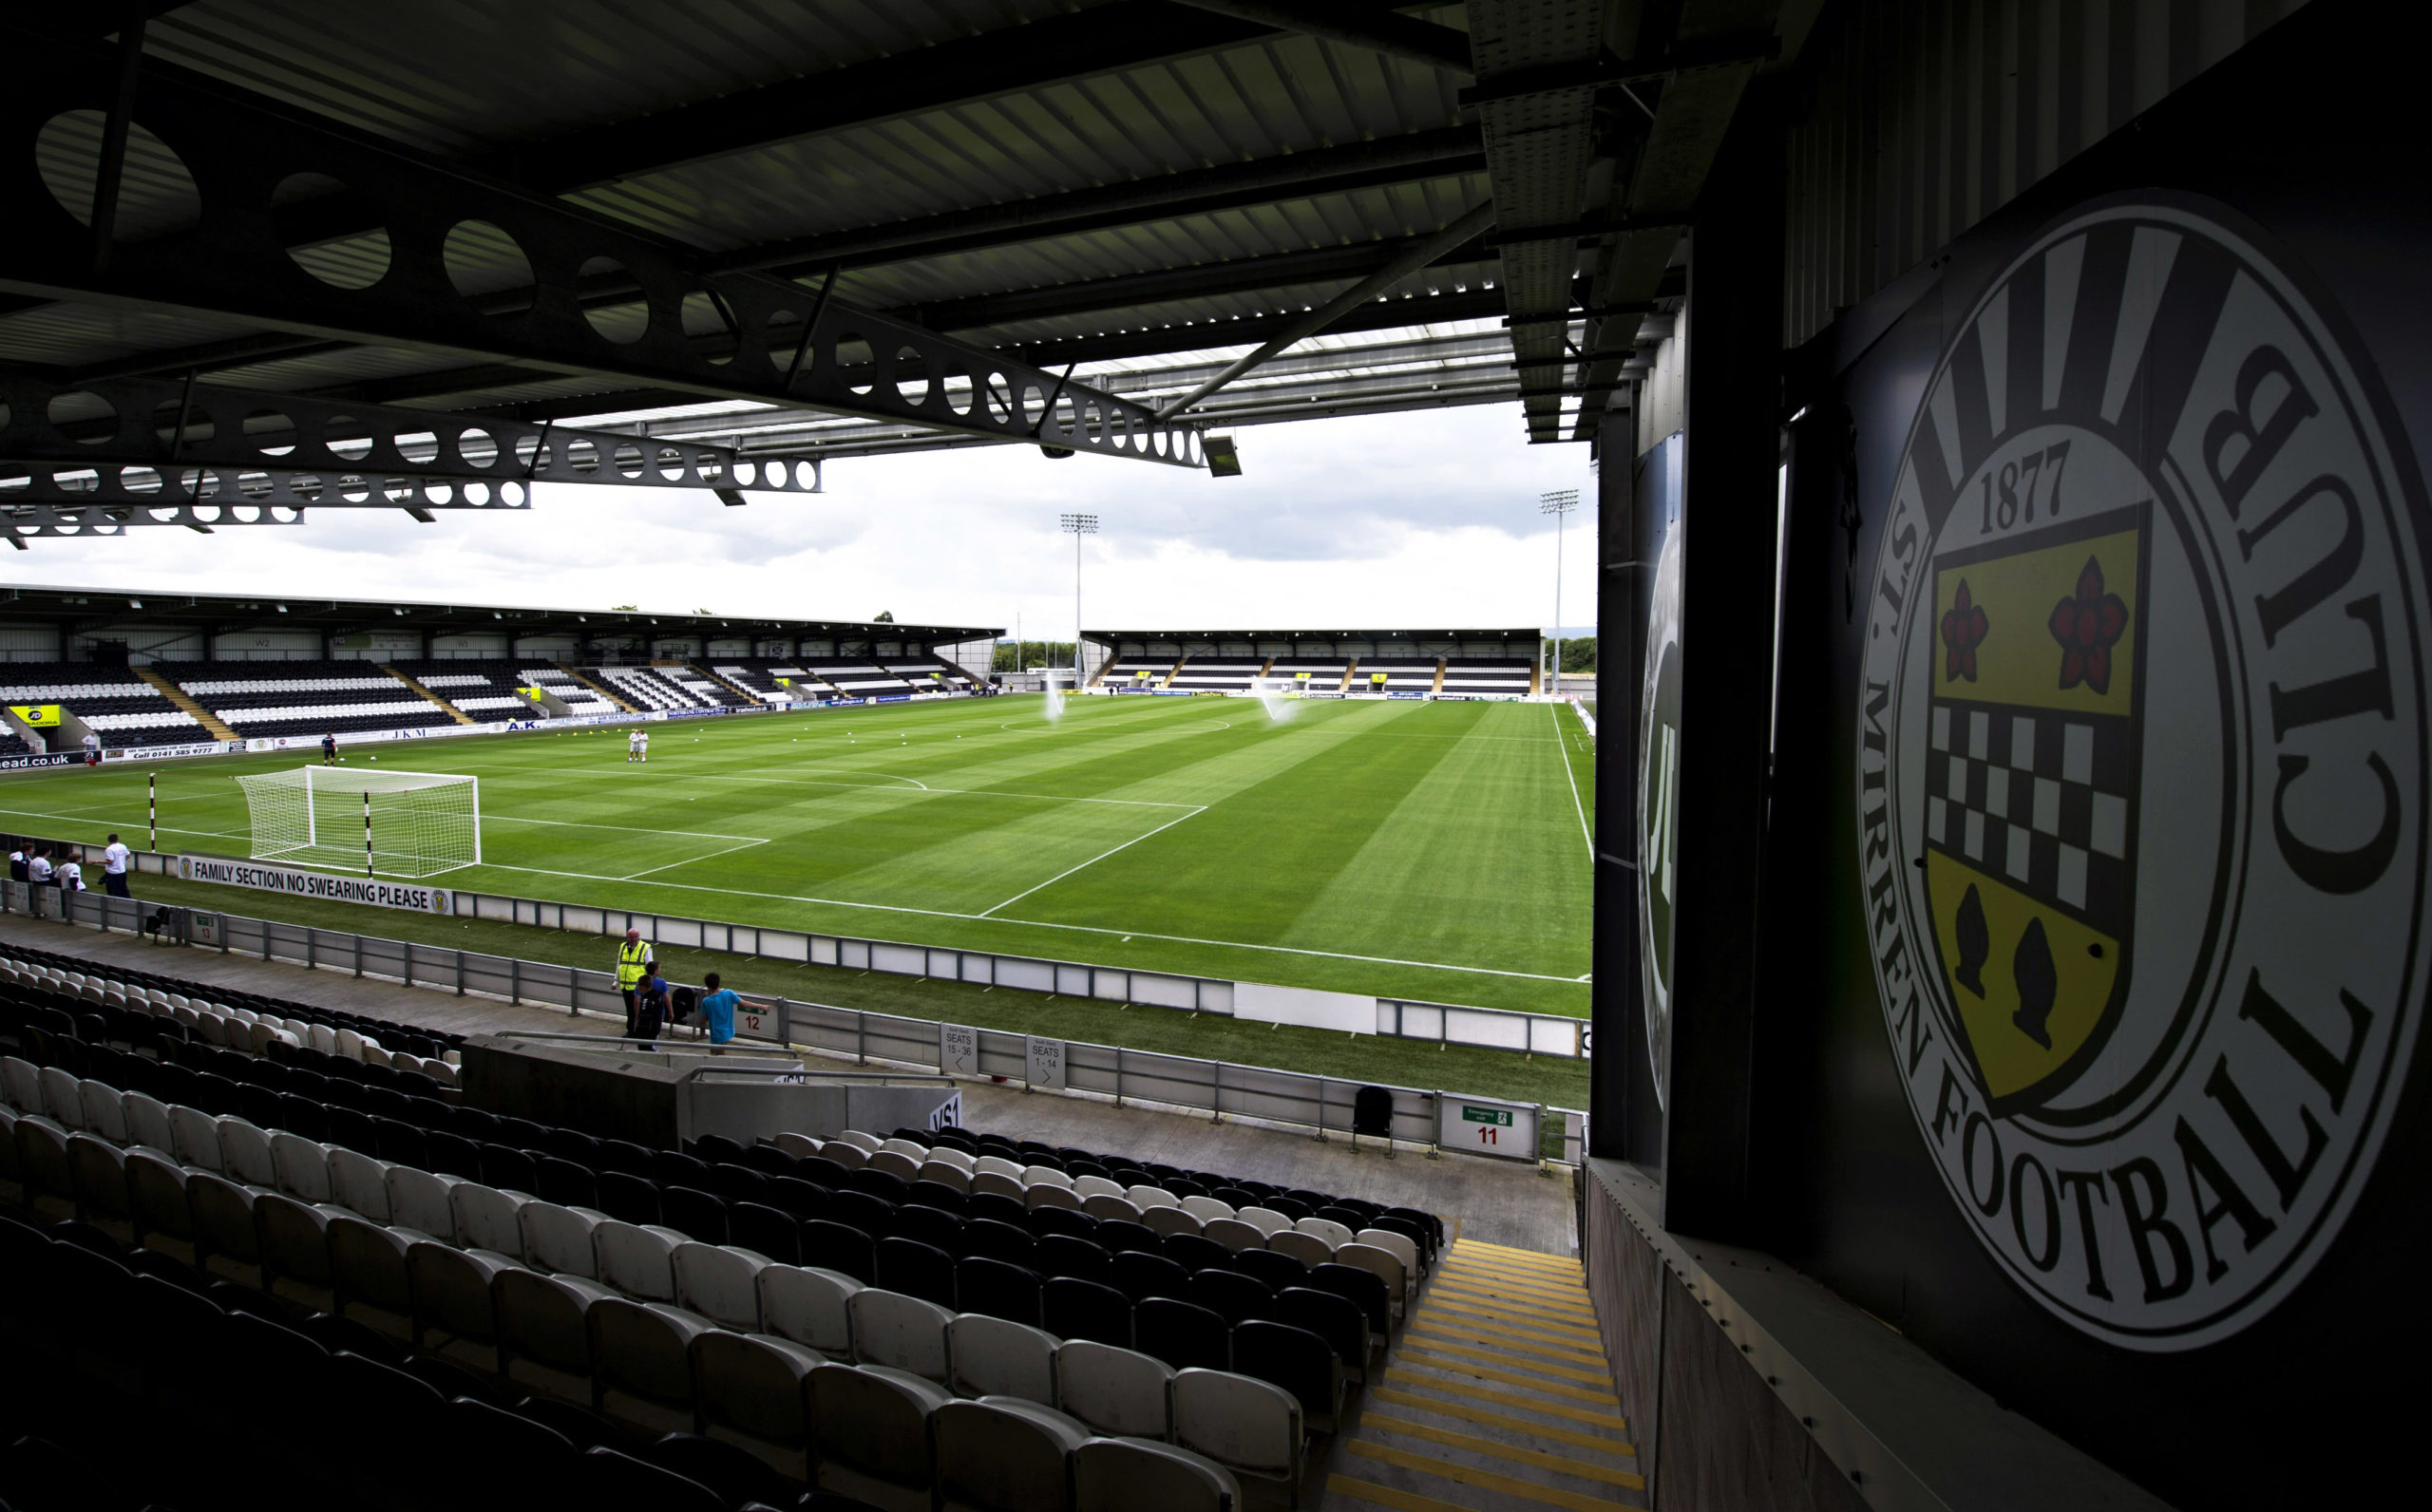 St Mirren confirmed they had returned several positive Covid-19 tests